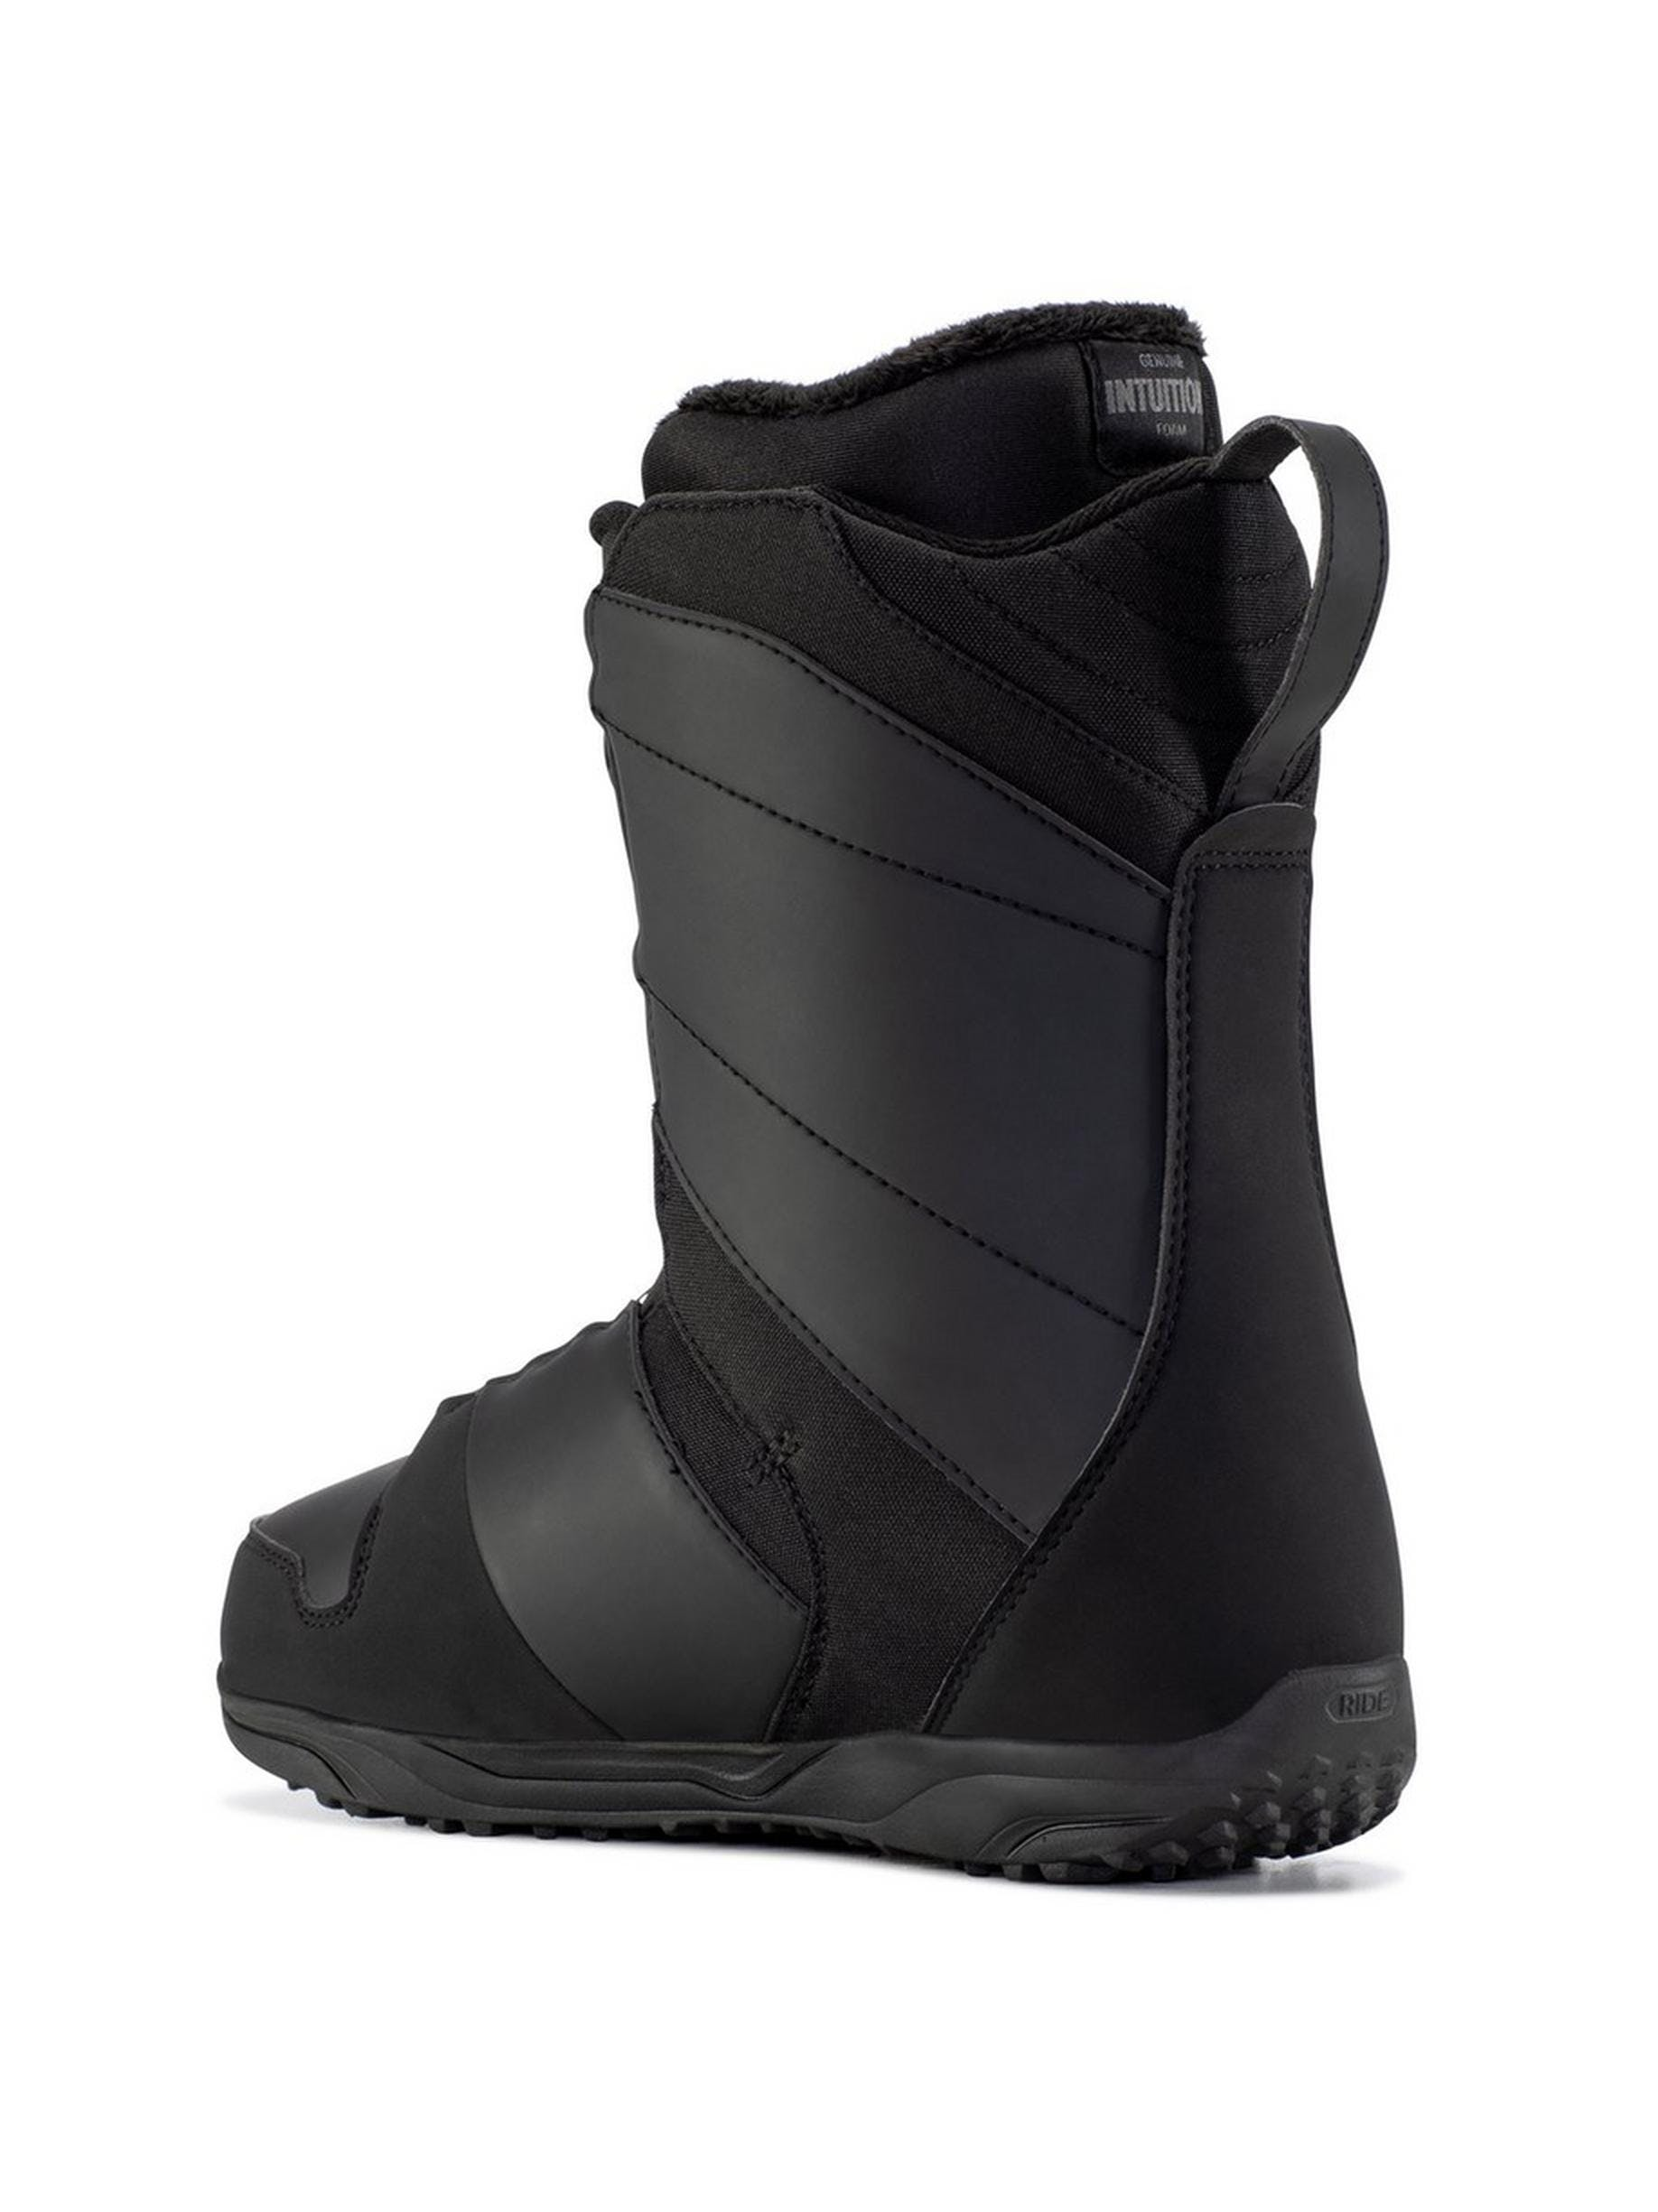 Ride Anthem Snowboard Boots · 2021